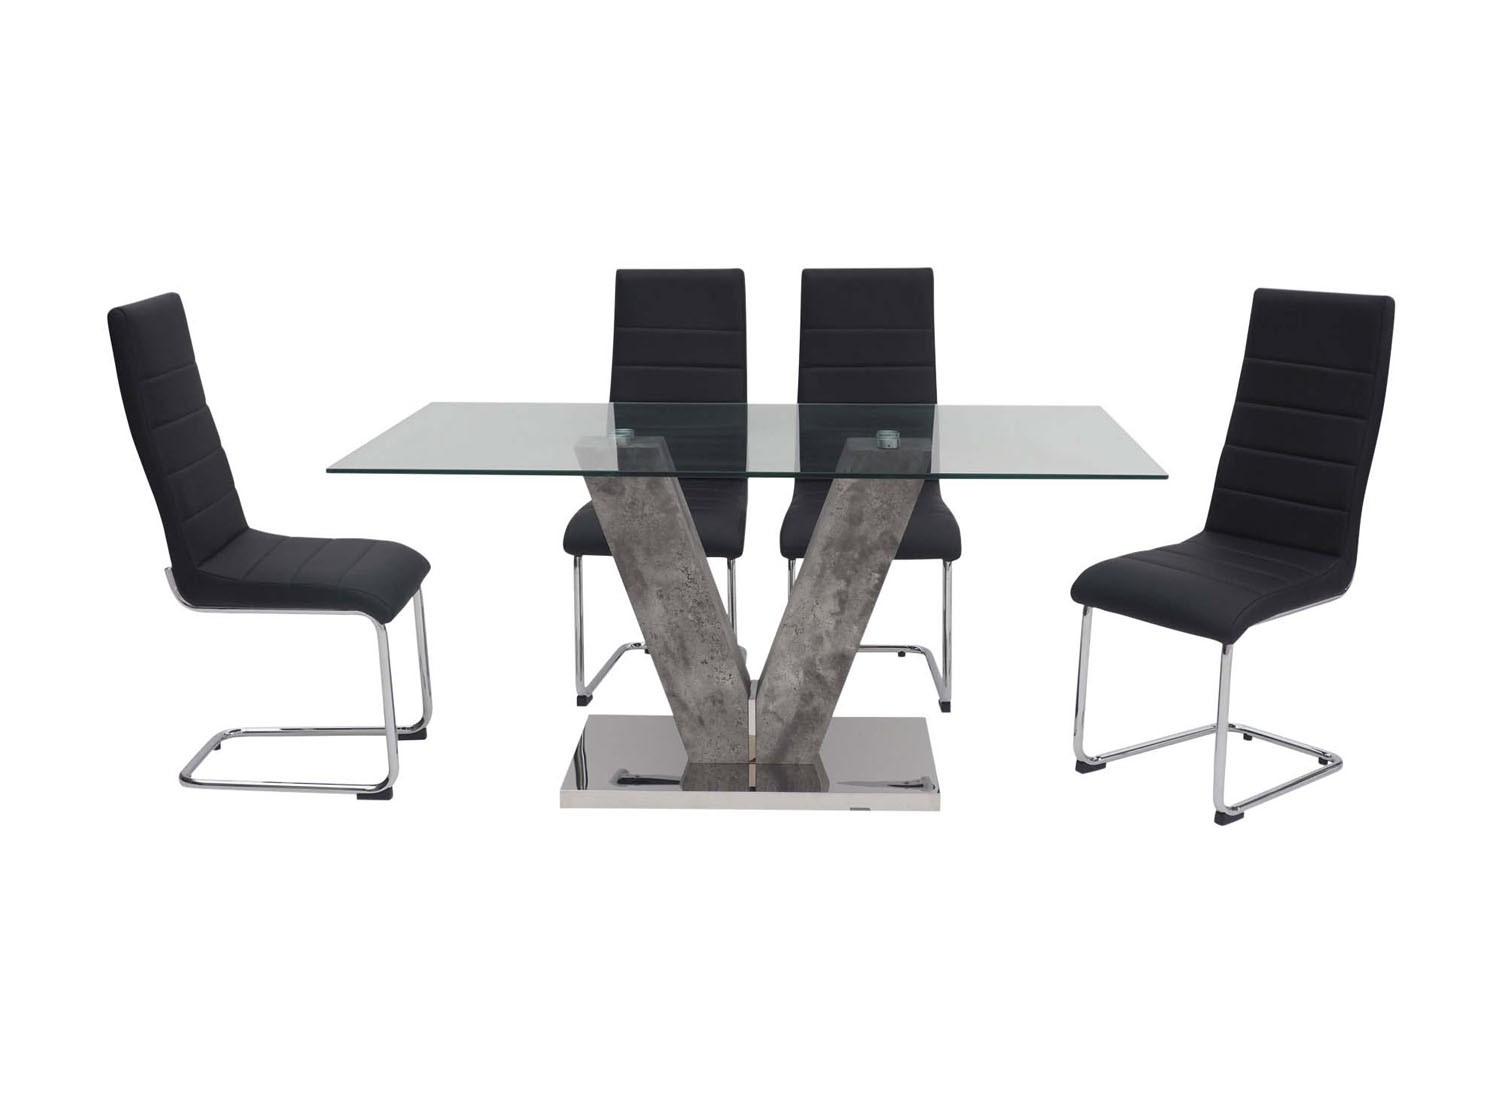 https://www.firstfurniture.co.uk/pub/media/catalog/product/d/o/dolce_dining_table_clear_hugo_chair_black2_1_1_2.jpg